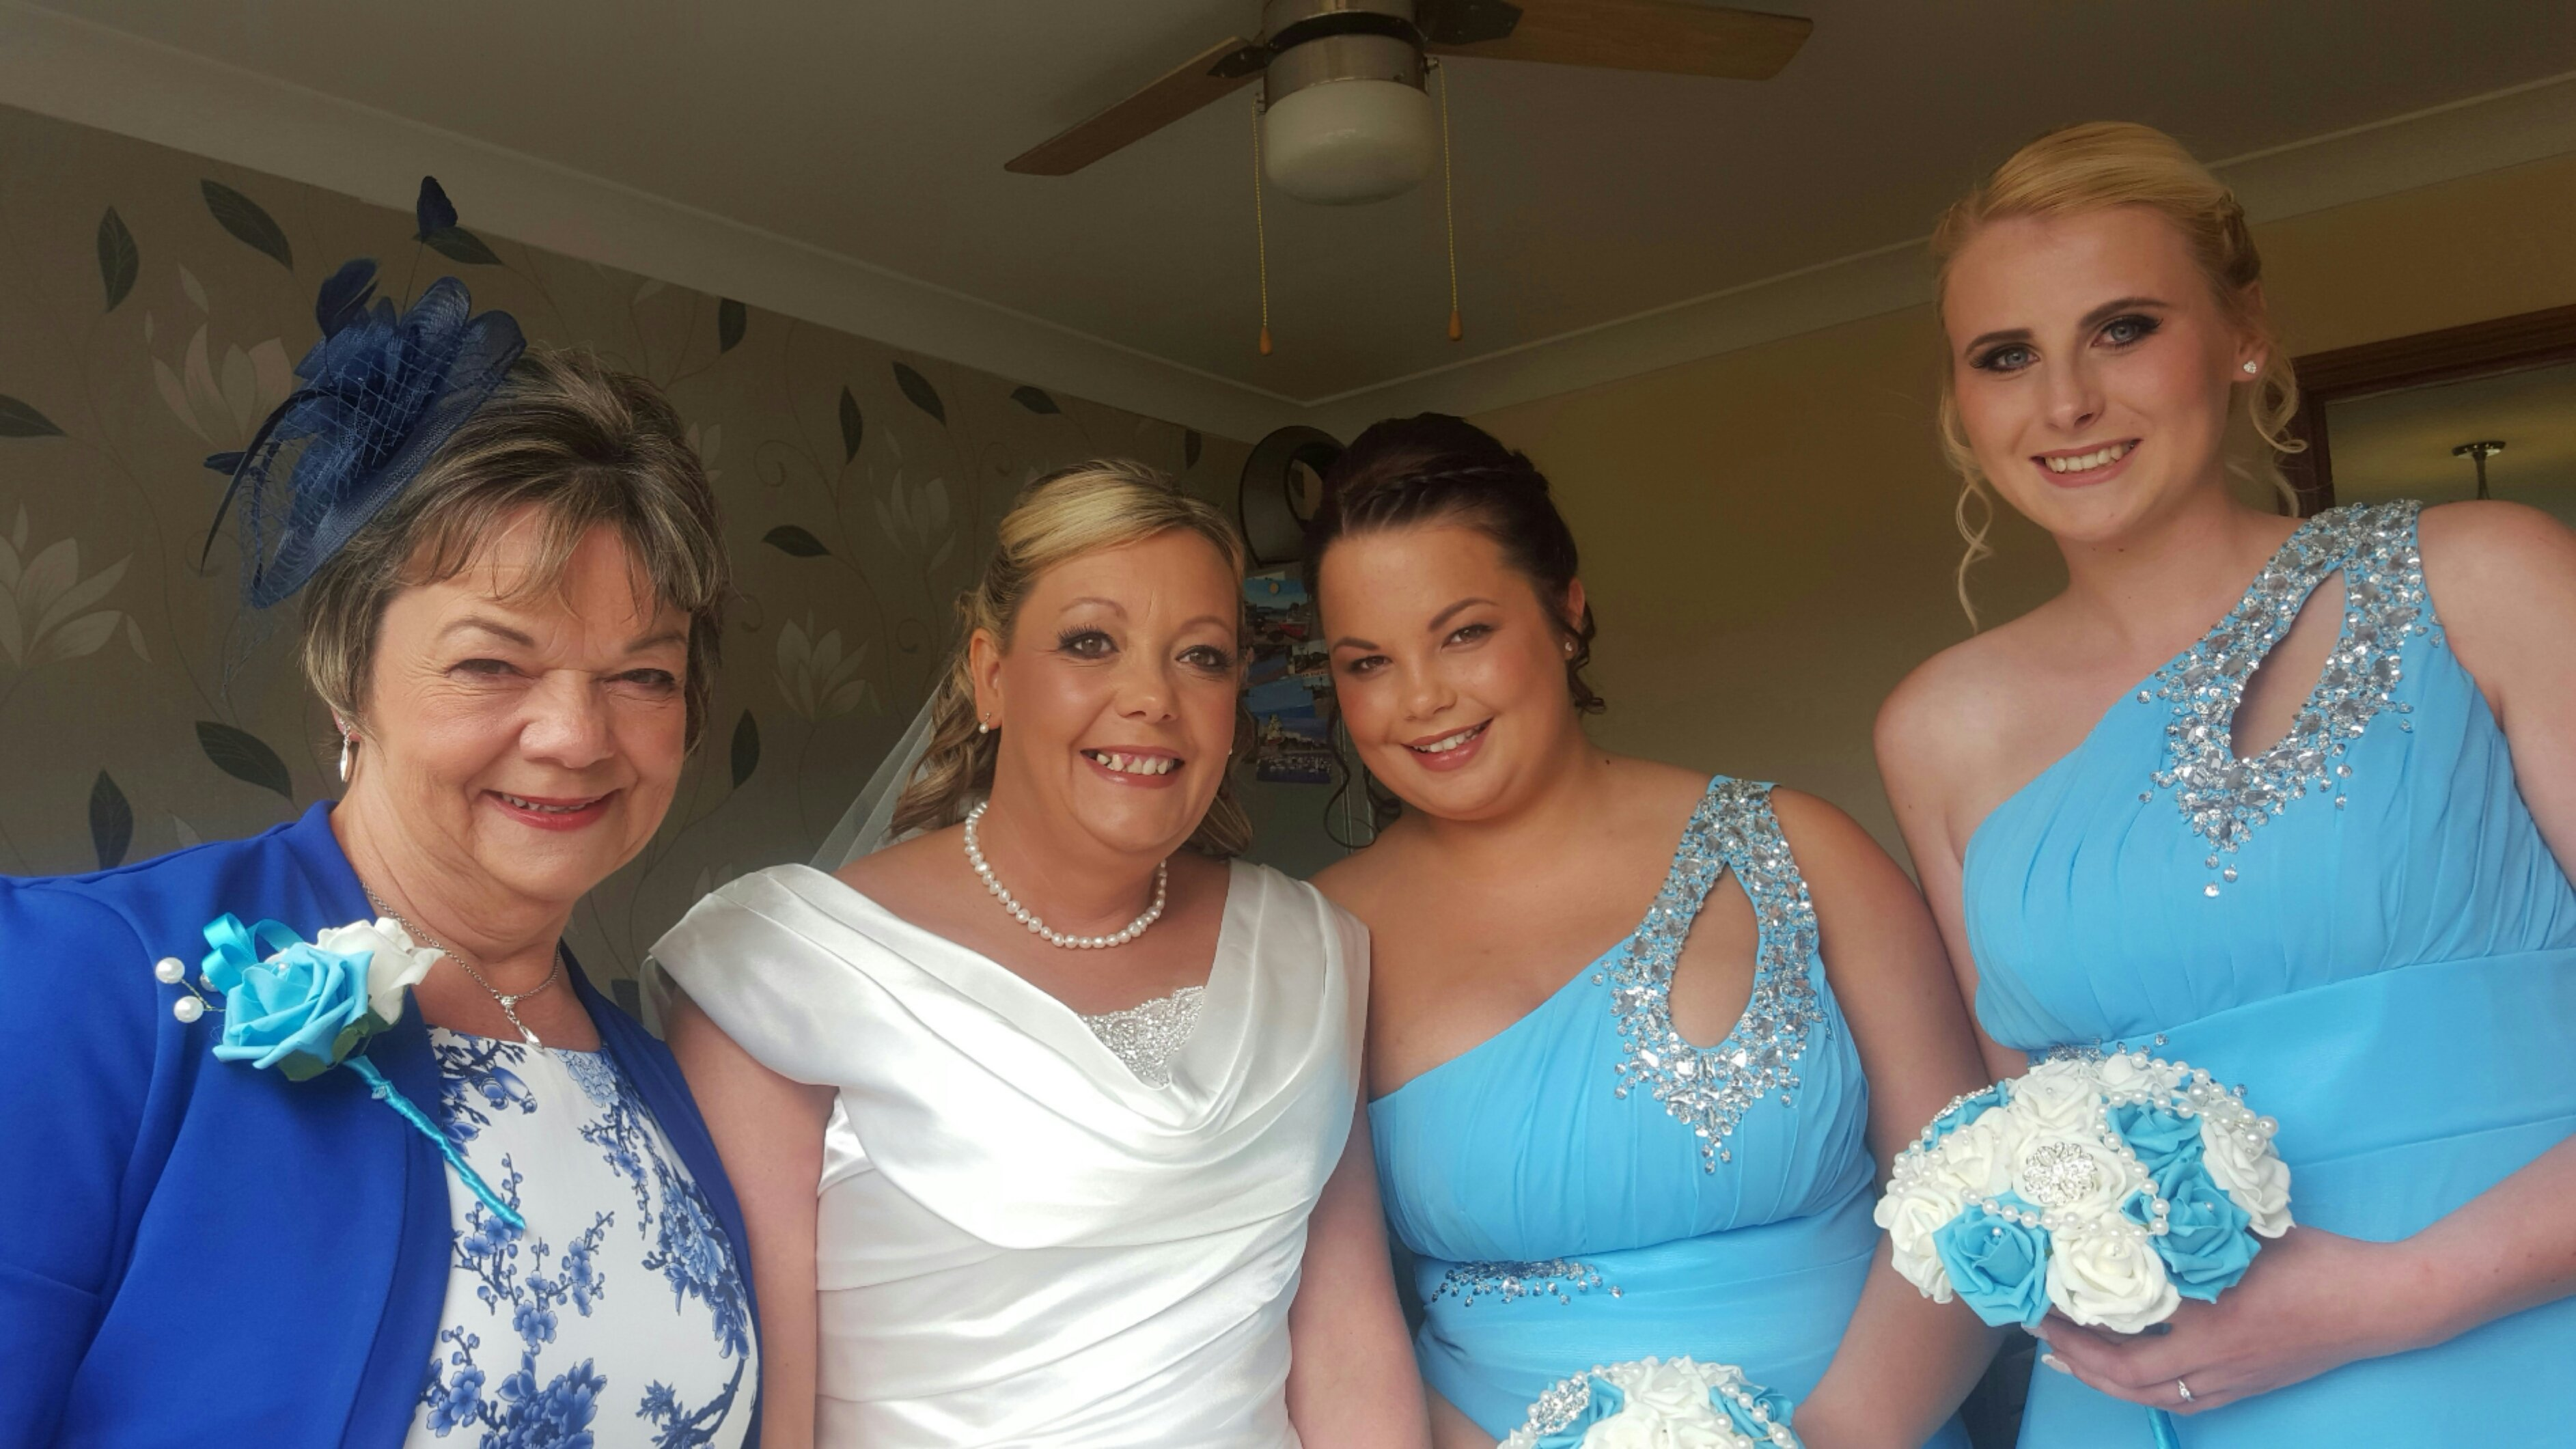 mother of bride, bride and bridesmaids